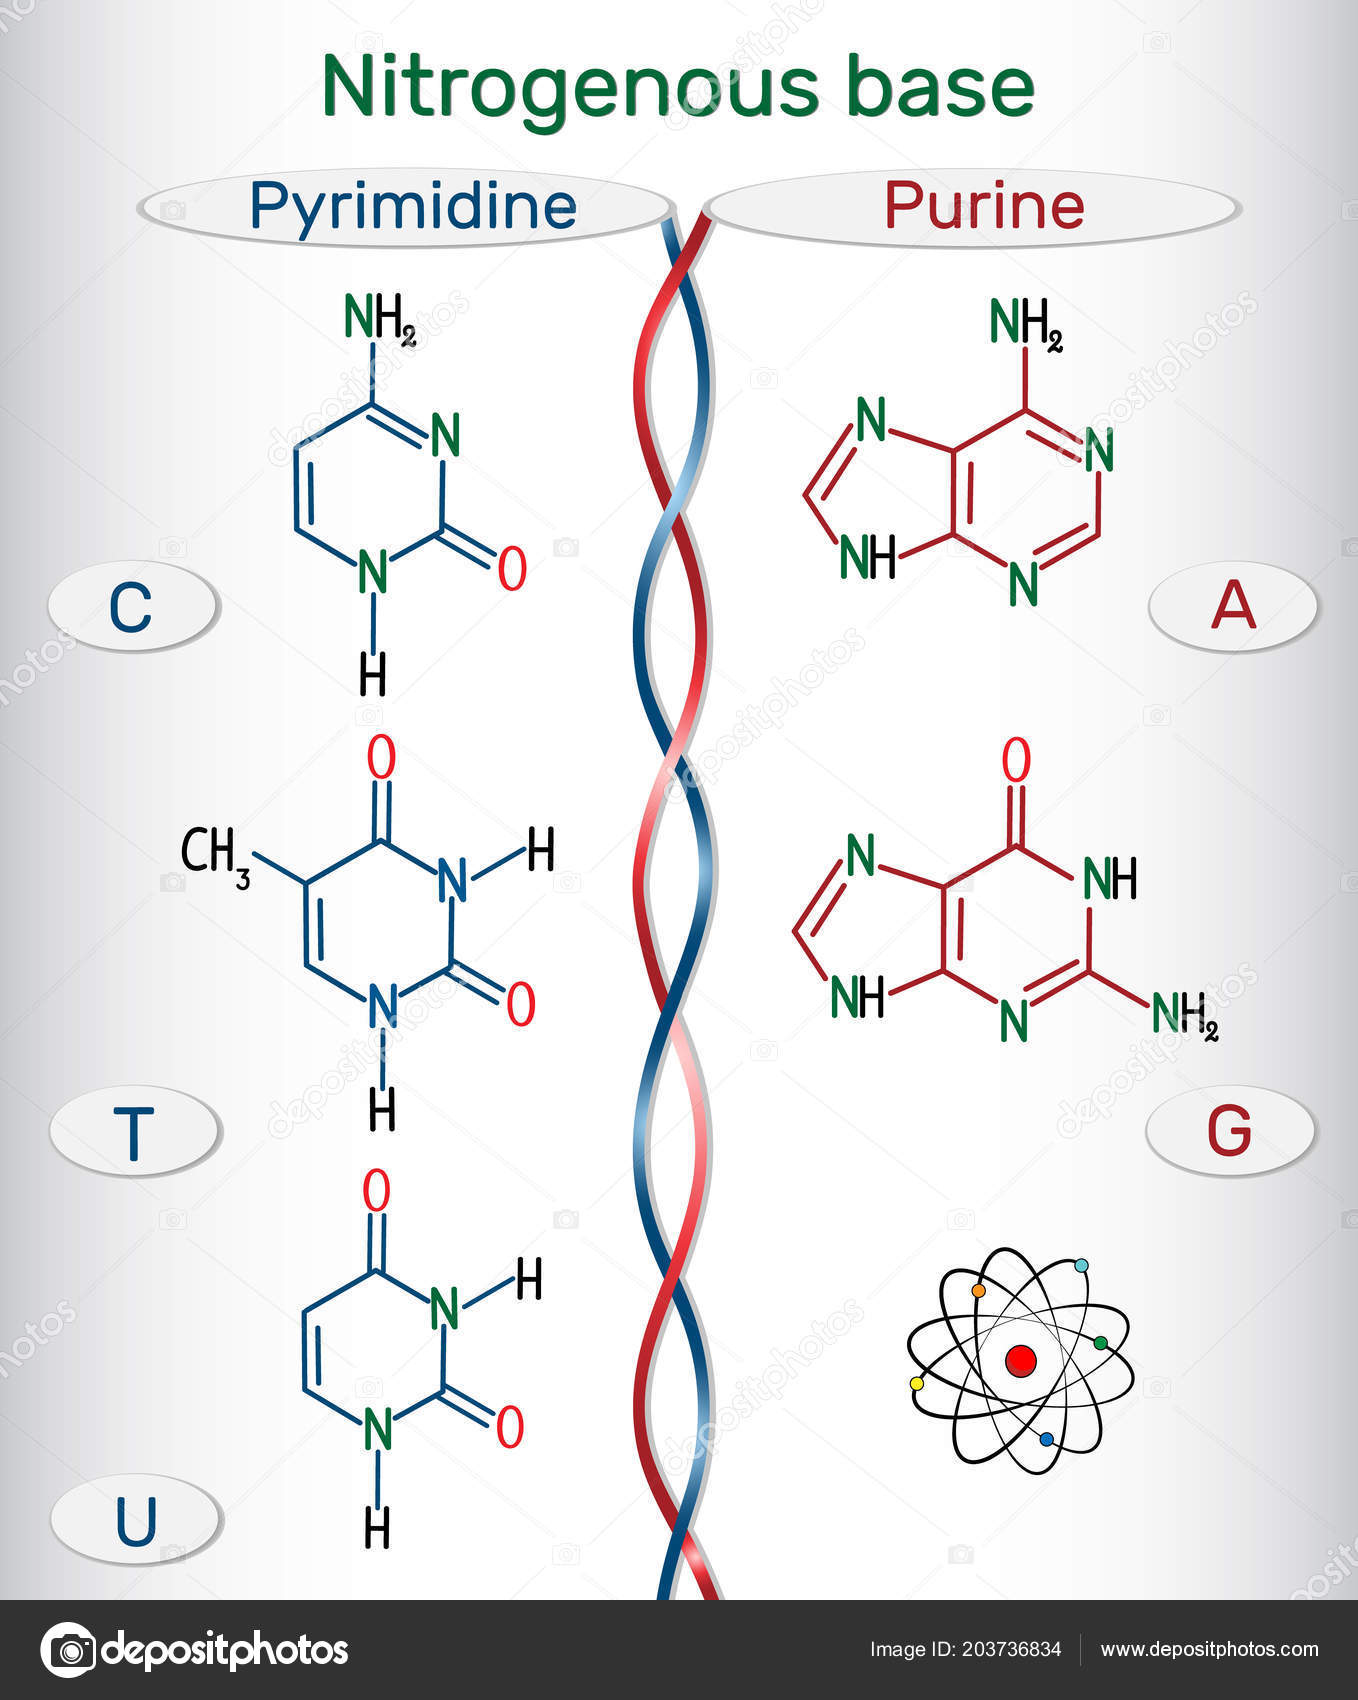 hight resolution of chemical structural formulas of purine and pyrimidine nitrogenous bases adenine a ade guanine g gua thymine t thy uracil u cytosine c